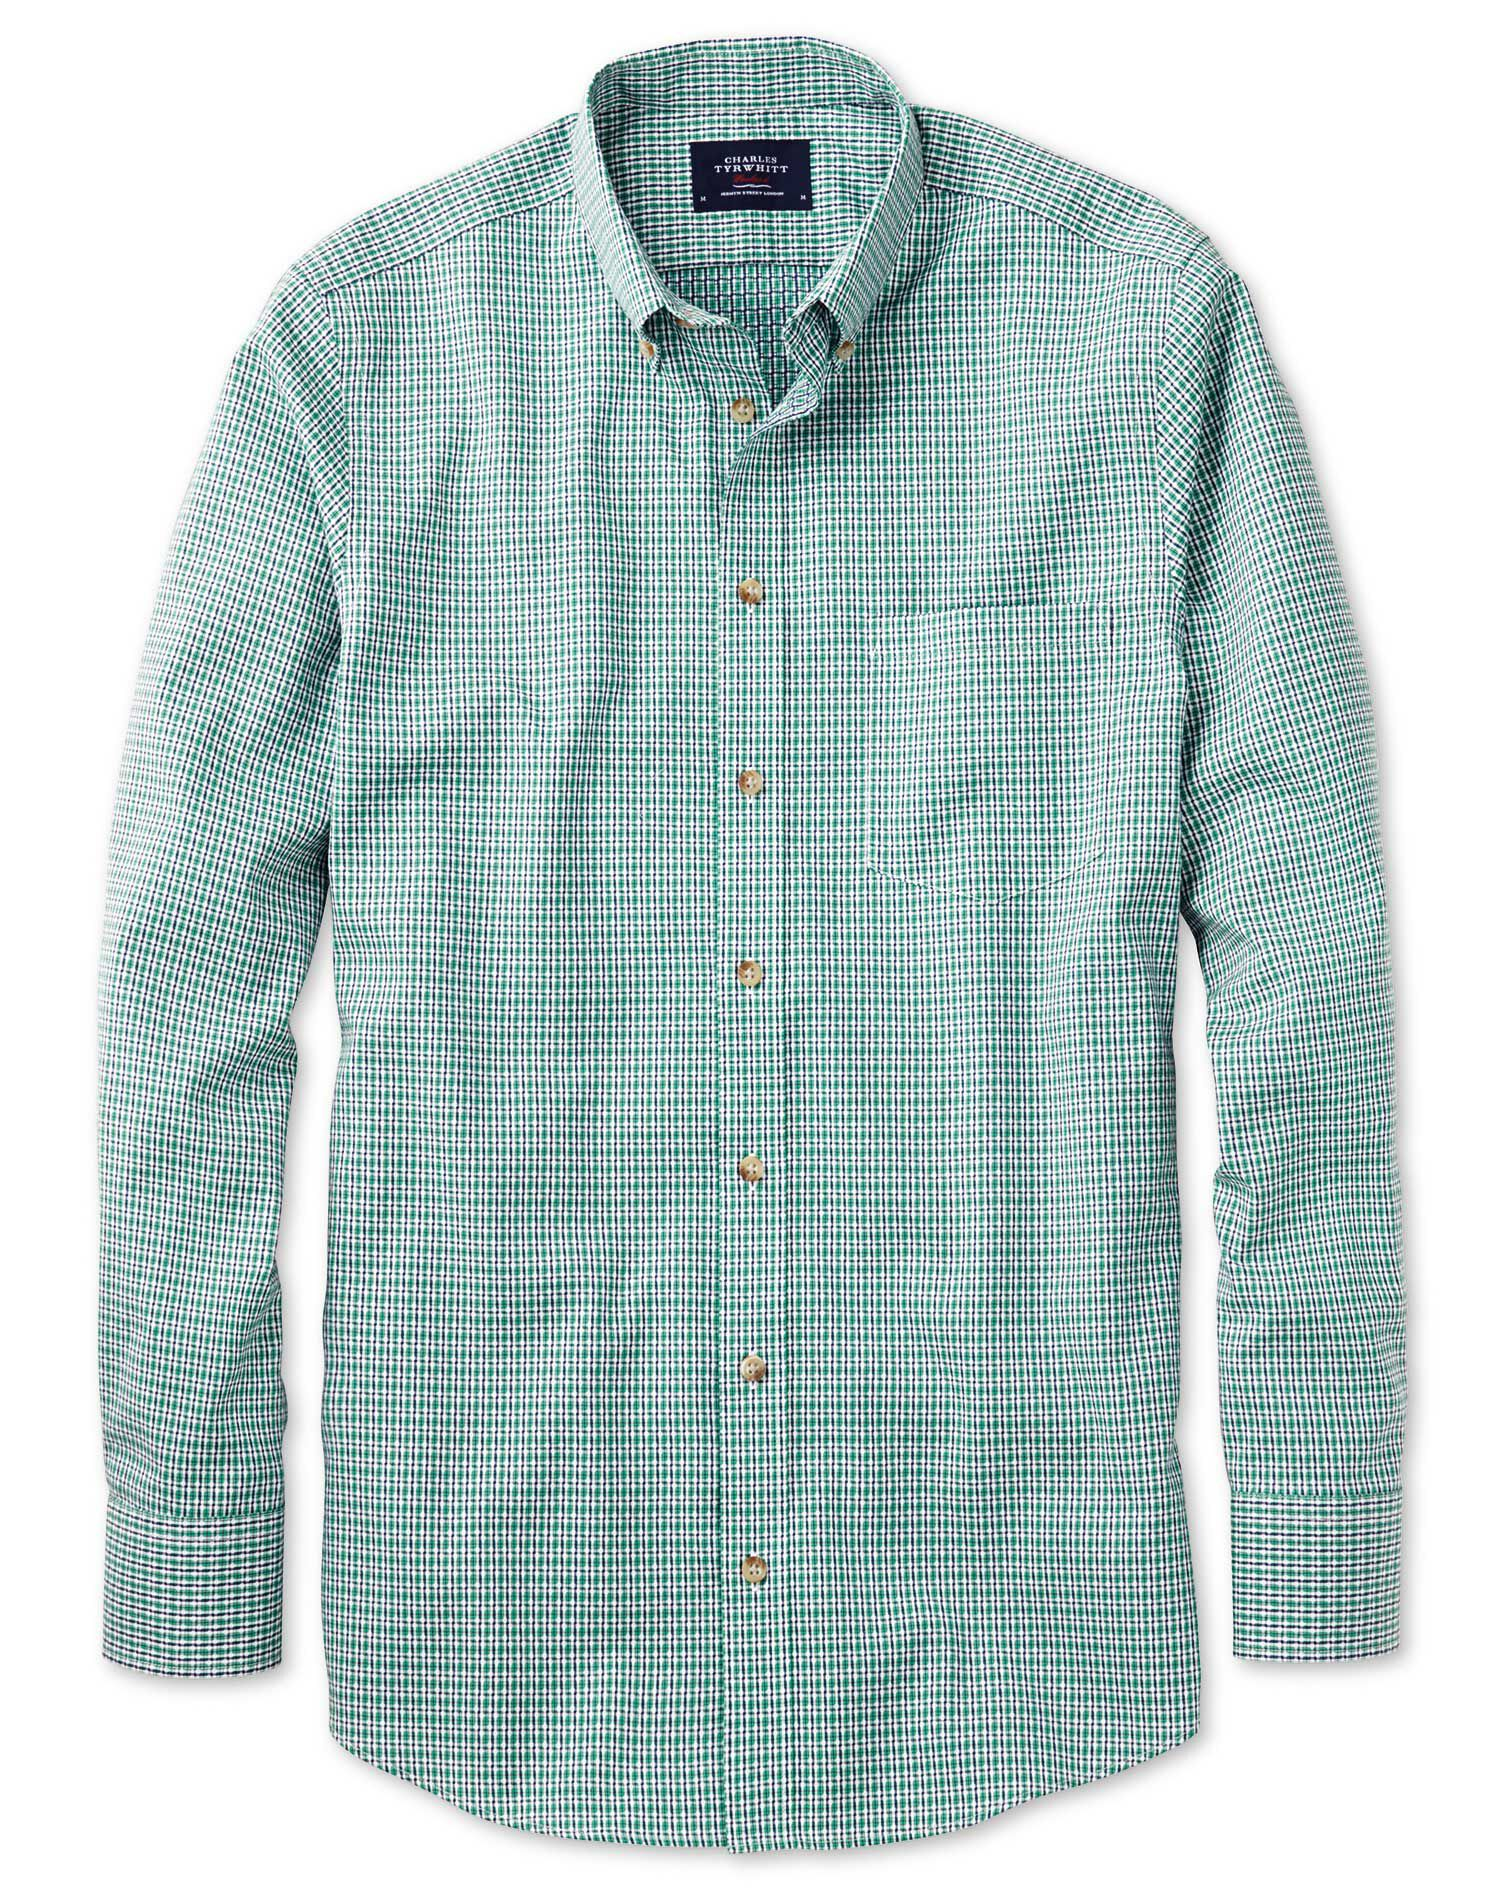 Classic Fit Non-Iron Poplin Green and Navy Check Cotton Shirt Single Cuff Size XXL by Charles Tyrwhi